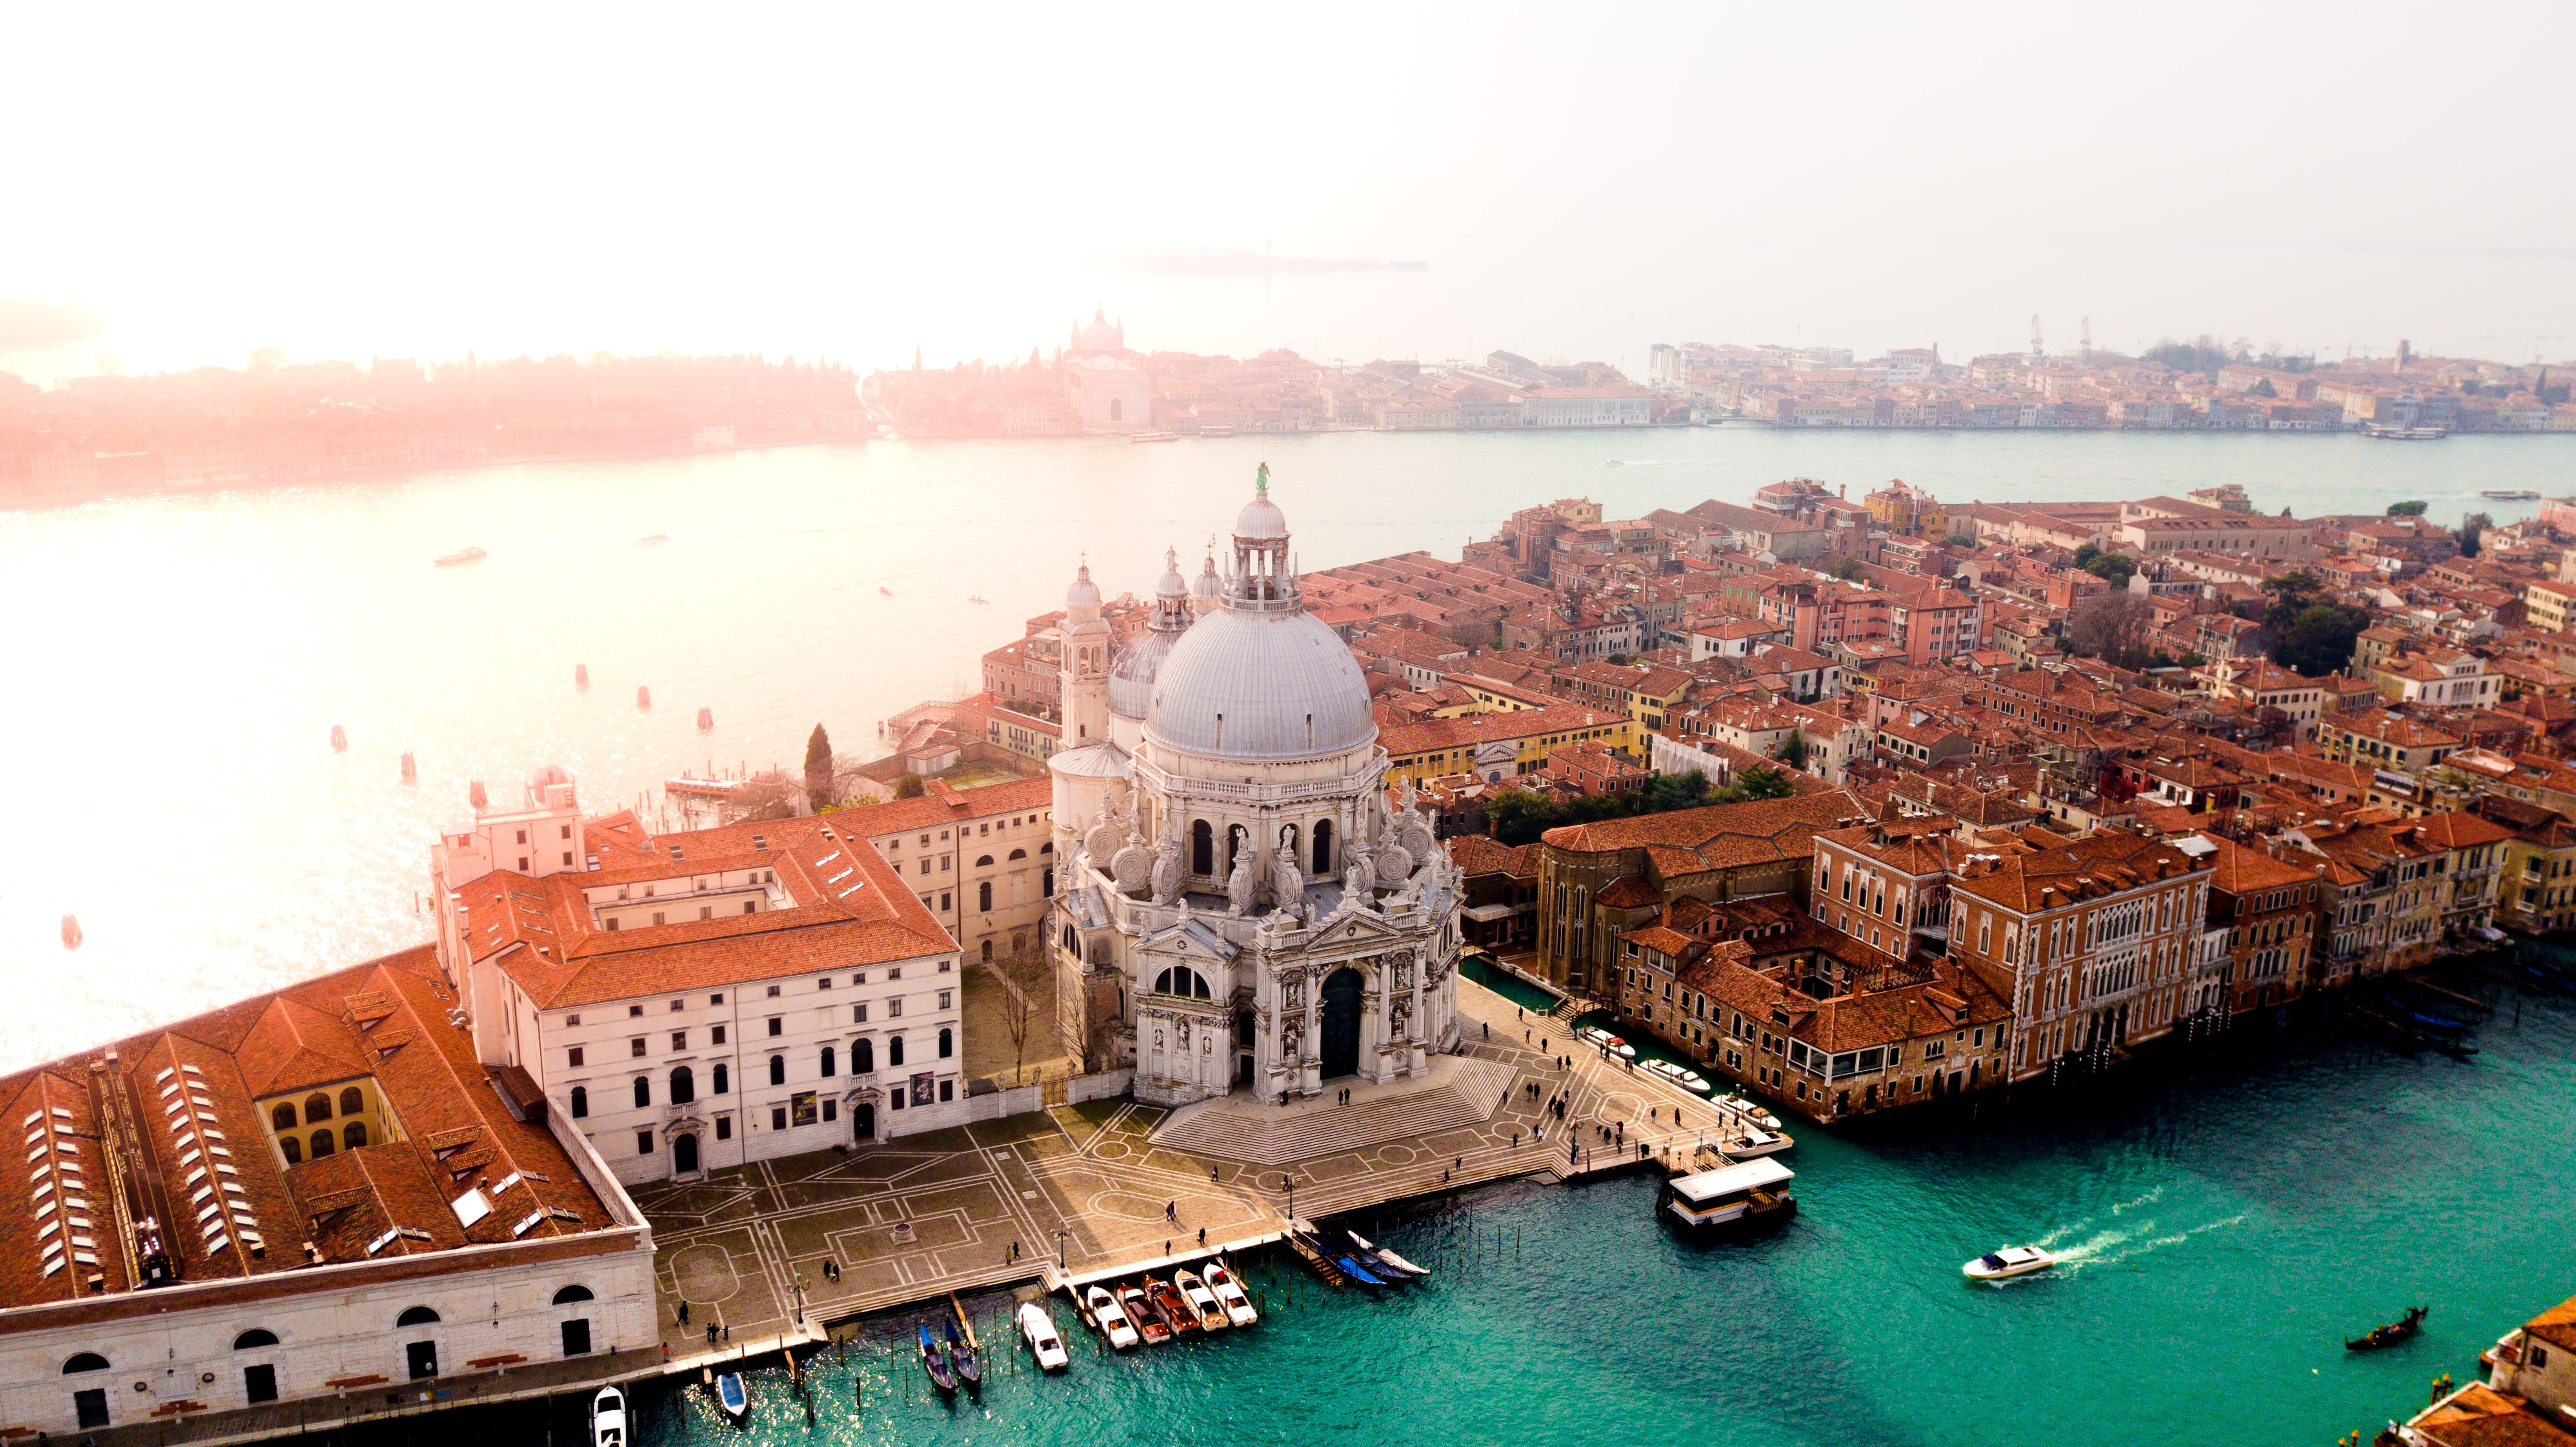 Aerial view of Venice in Italy as on August 2018